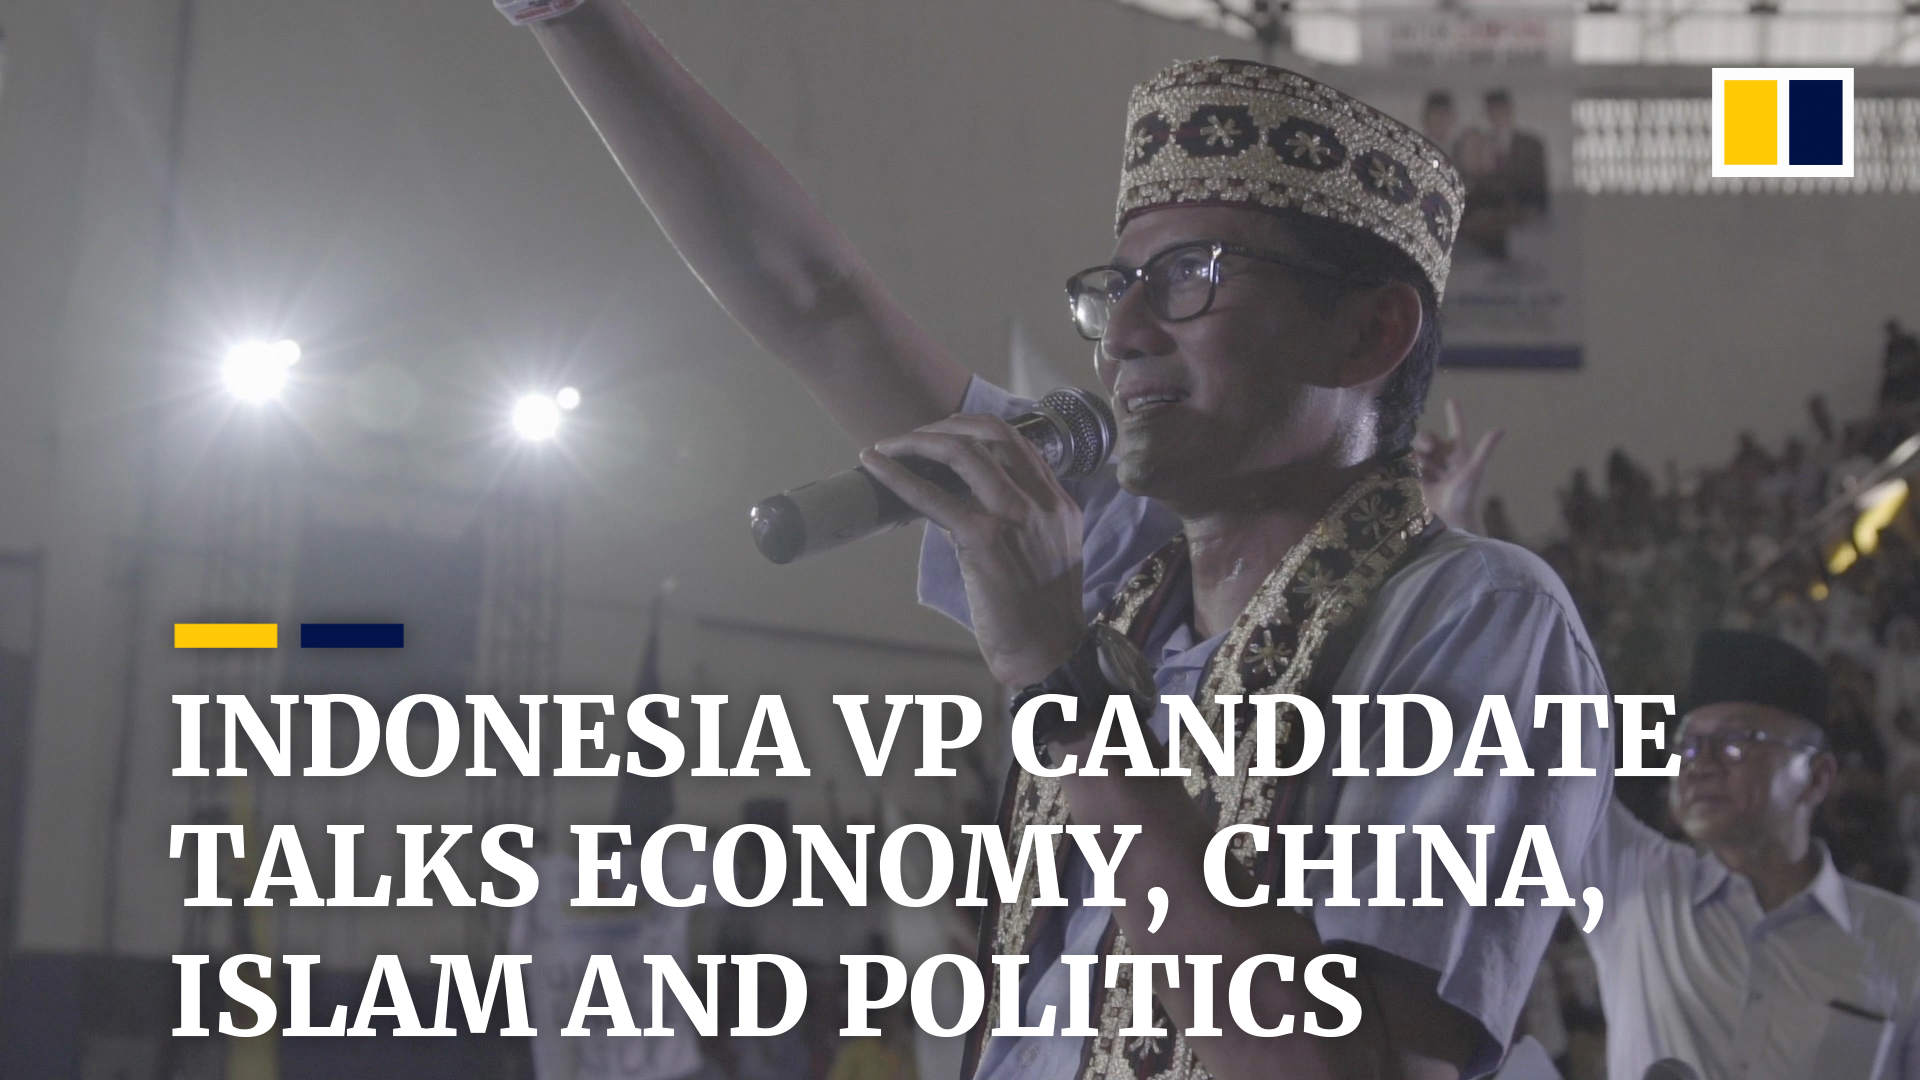 Indonesia election 'not about religion', says Sandiaga Uno